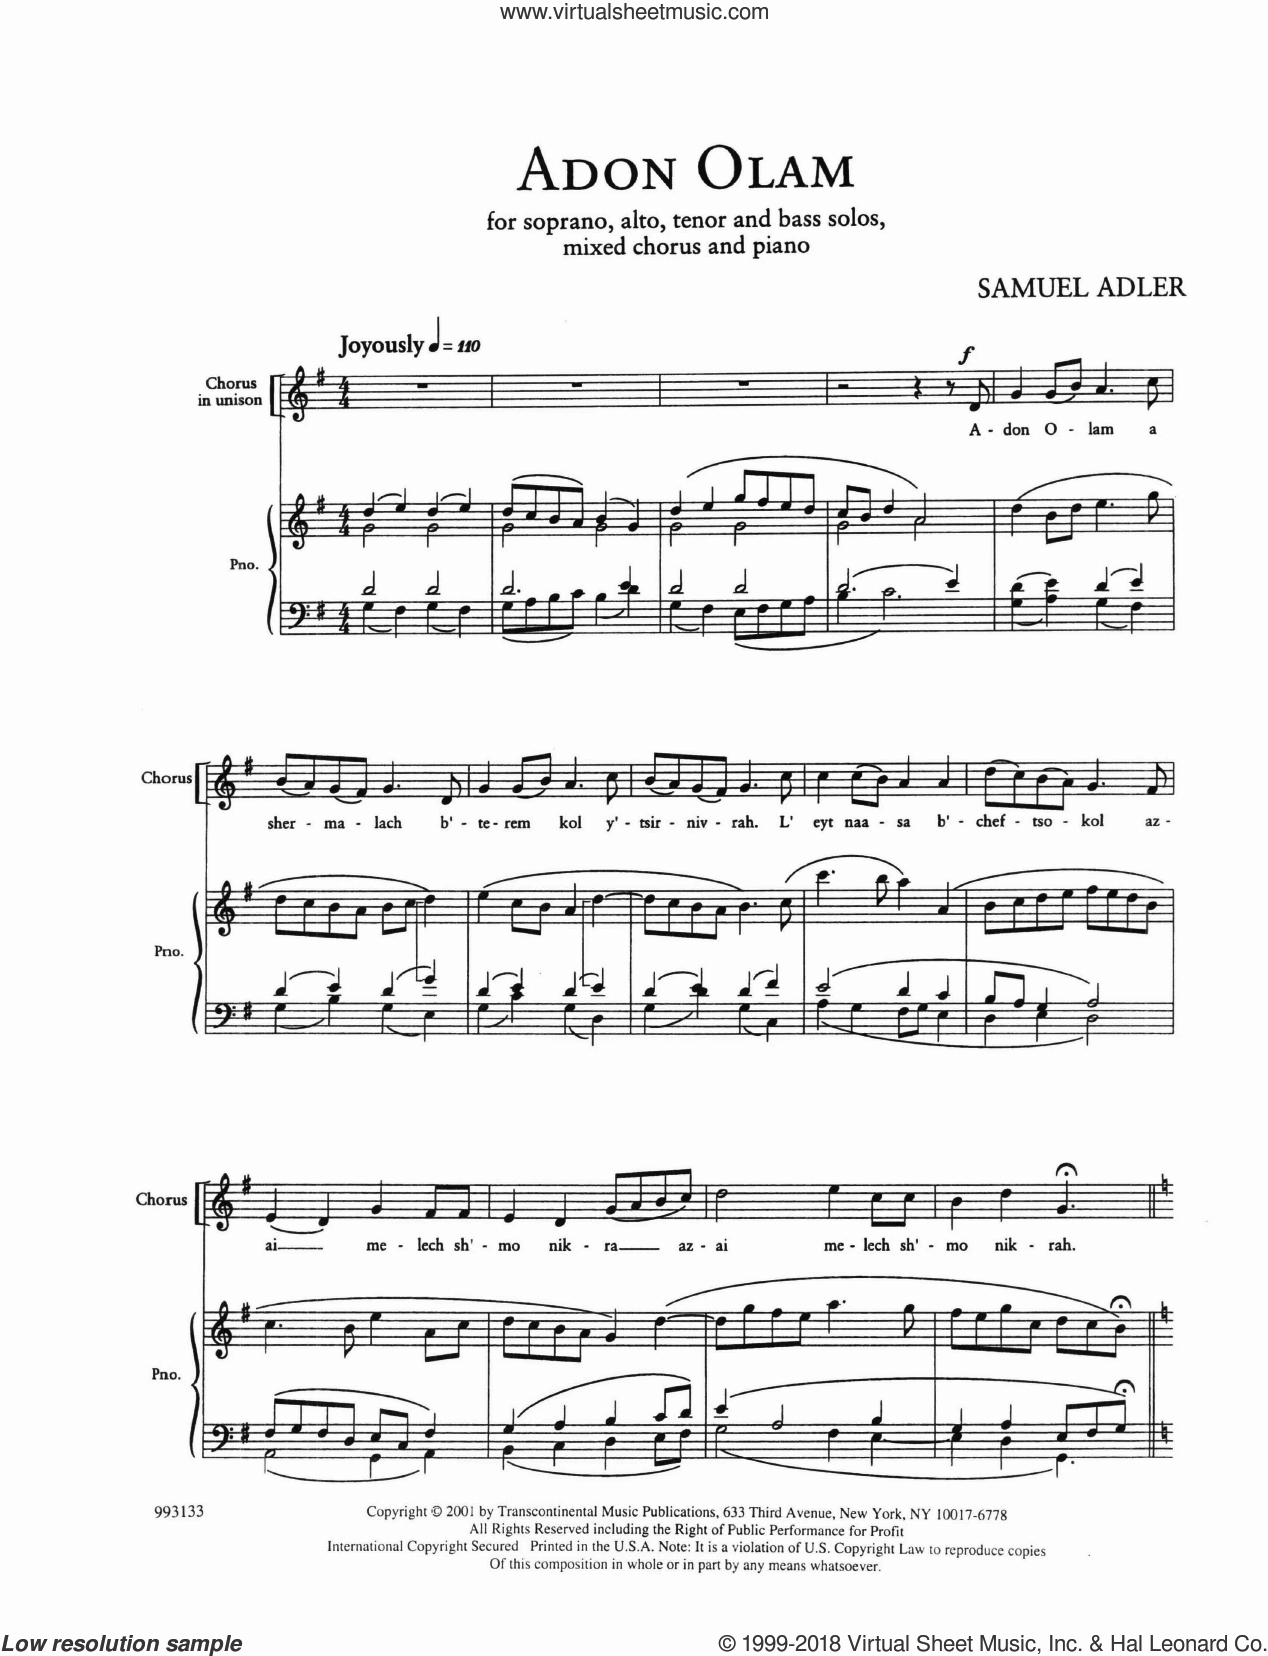 Five Sephardic Choruses: Adon Olam sheet music for choir (SATB: soprano, alto, tenor, bass) by Samuel Adler, intermediate skill level